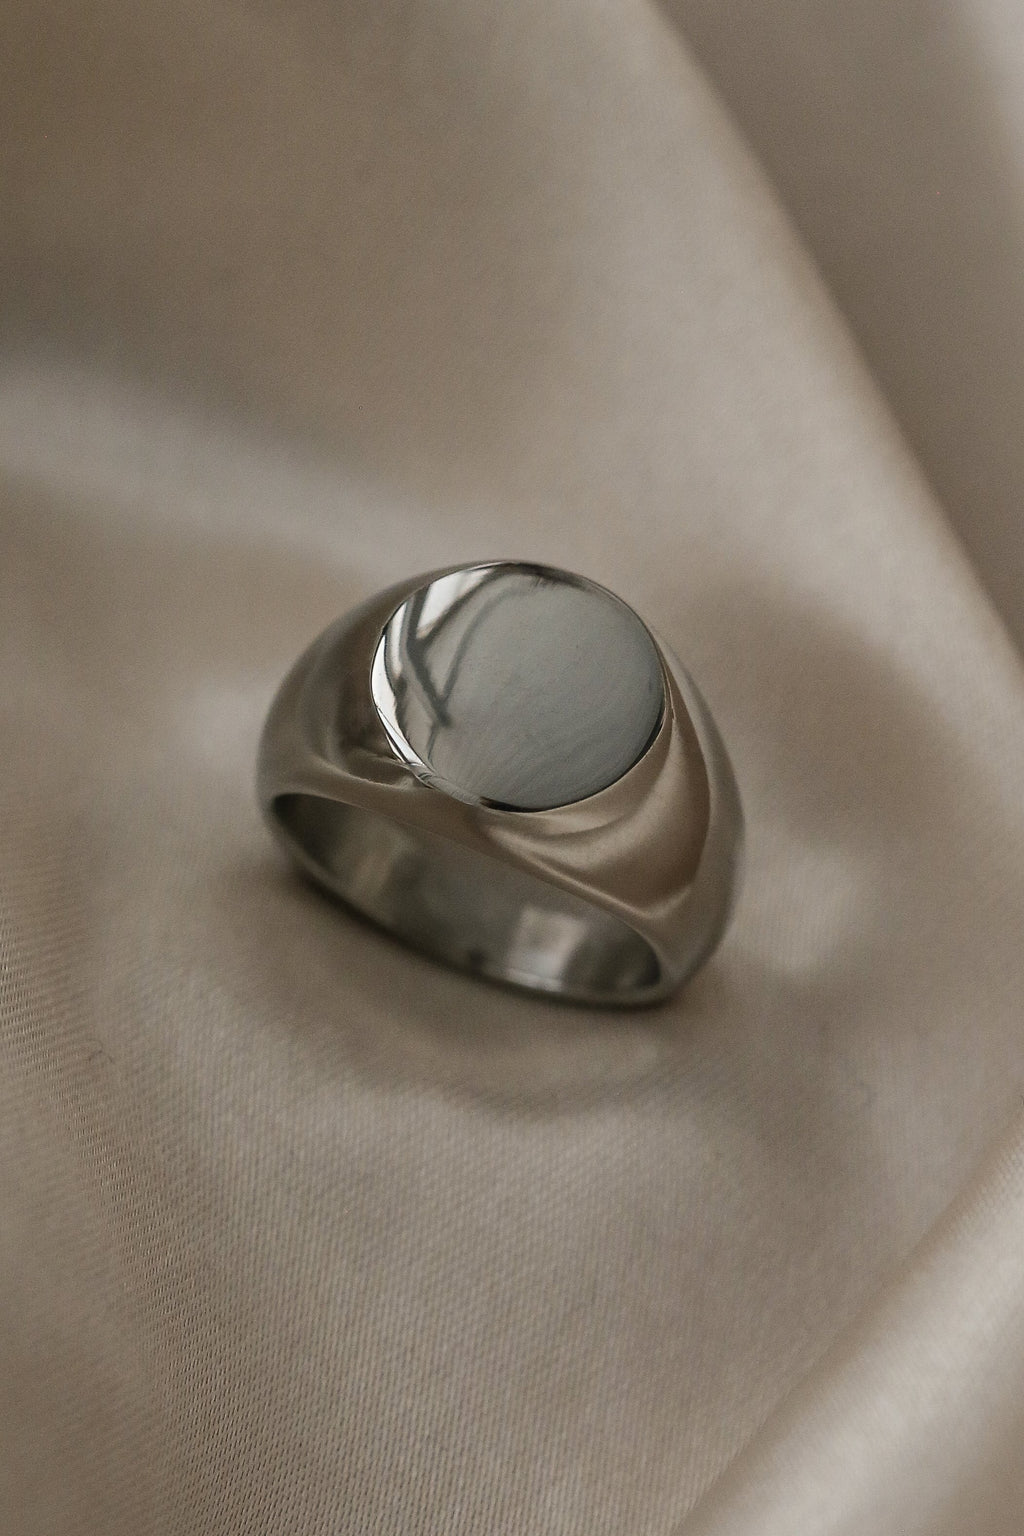 Cameron Man Ring - Boutique Minimaliste